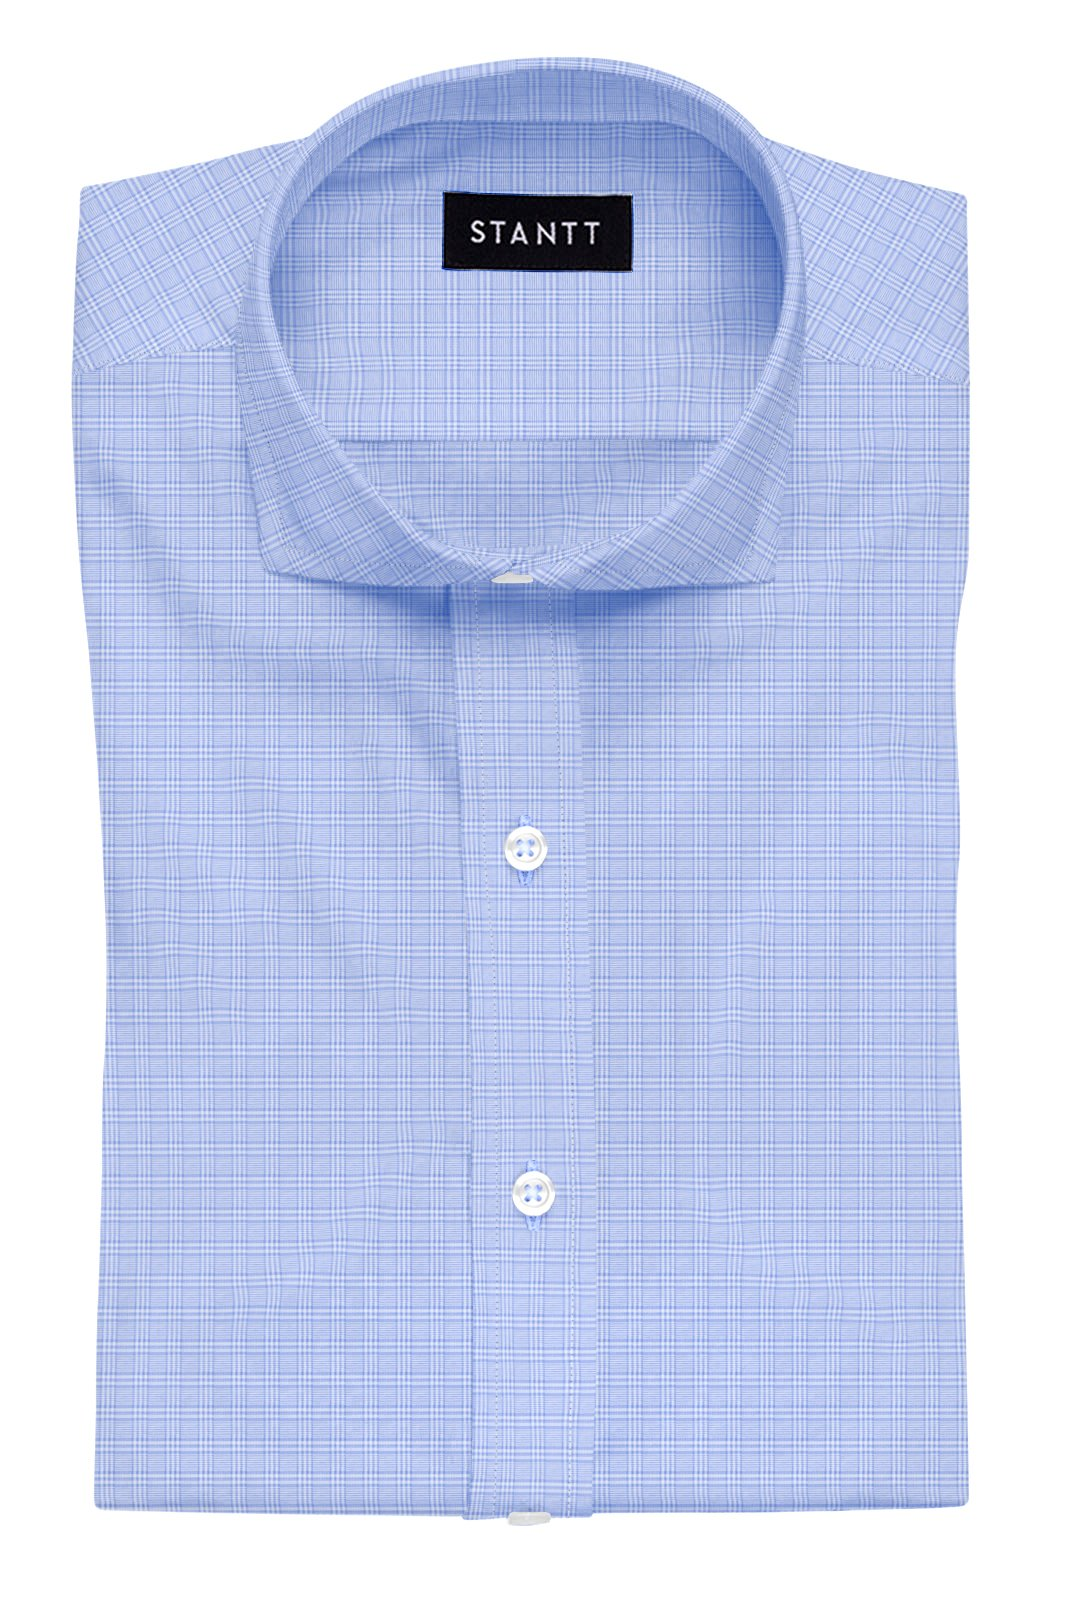 Light Blue Mini Raker Check: Cutaway Collar, French Cuff